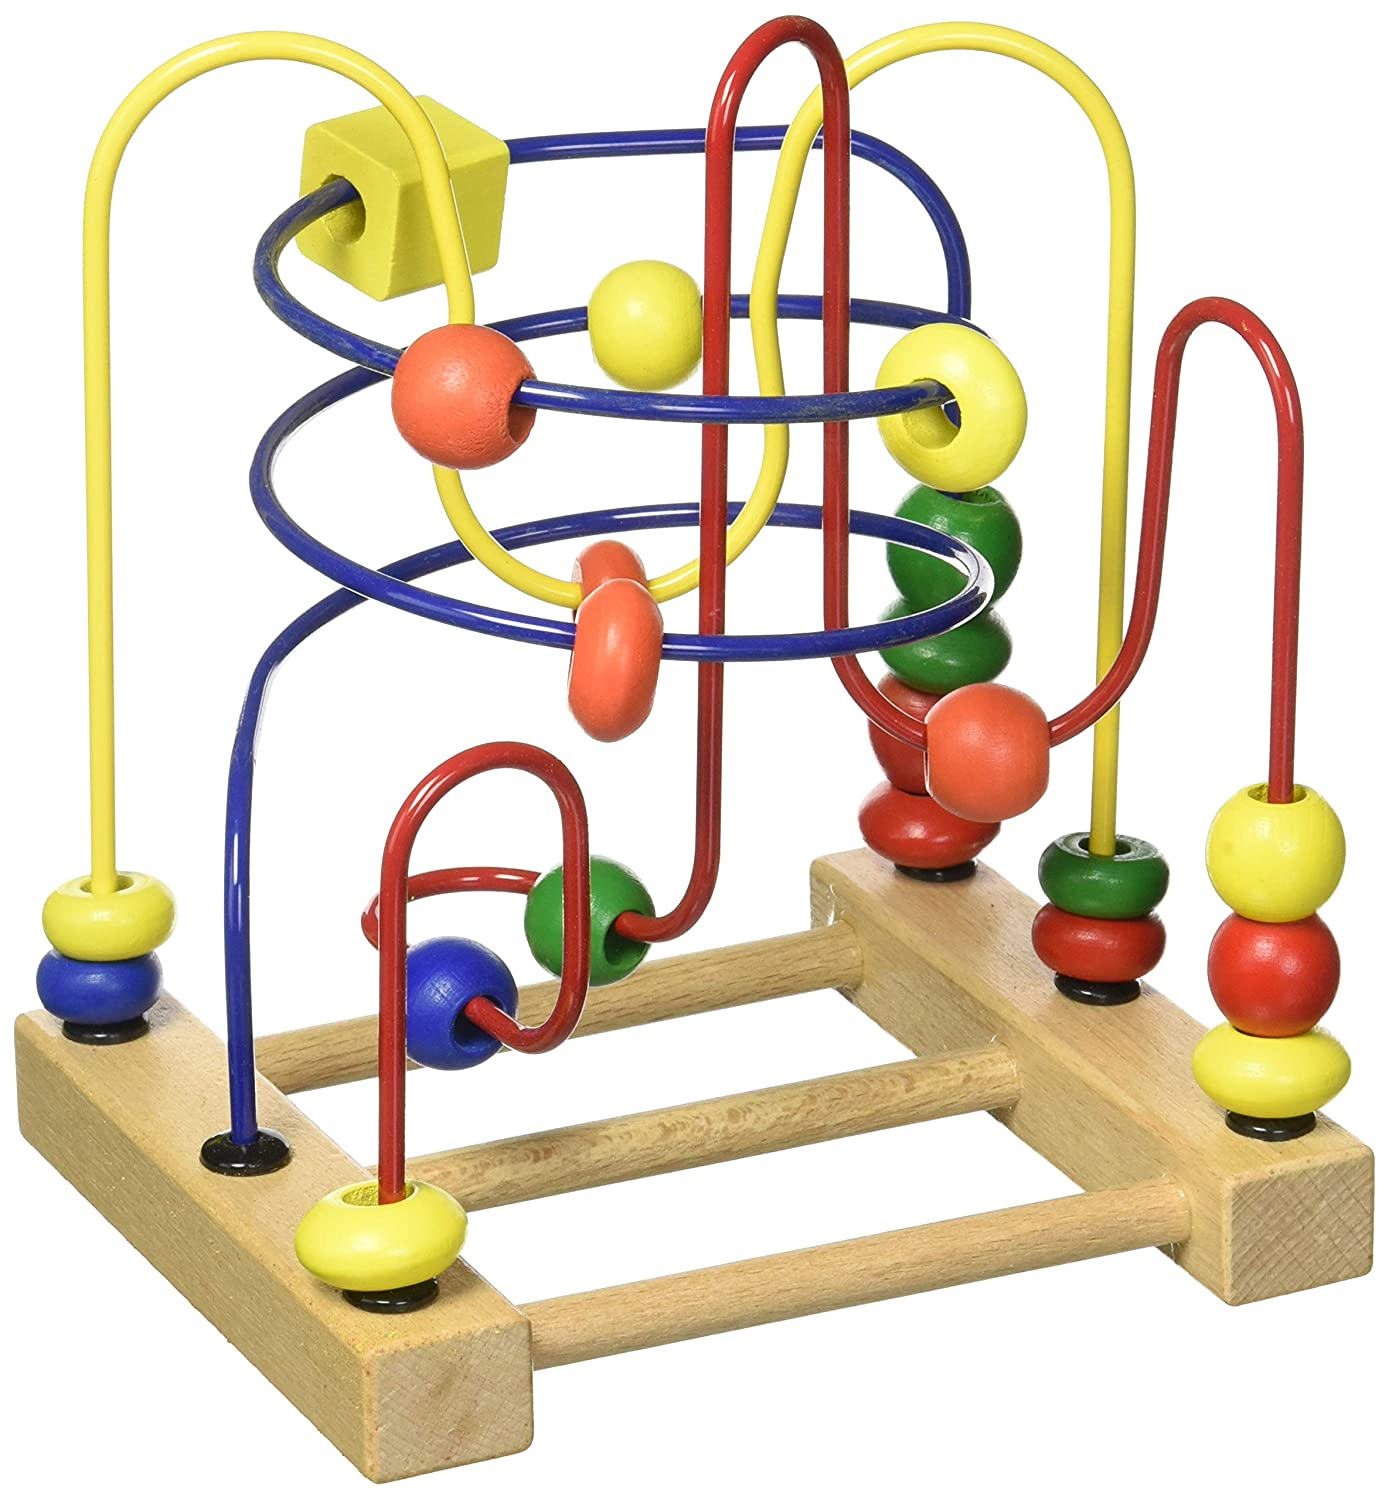 Imagination Generation Developmental Wooden Bead Maze Game